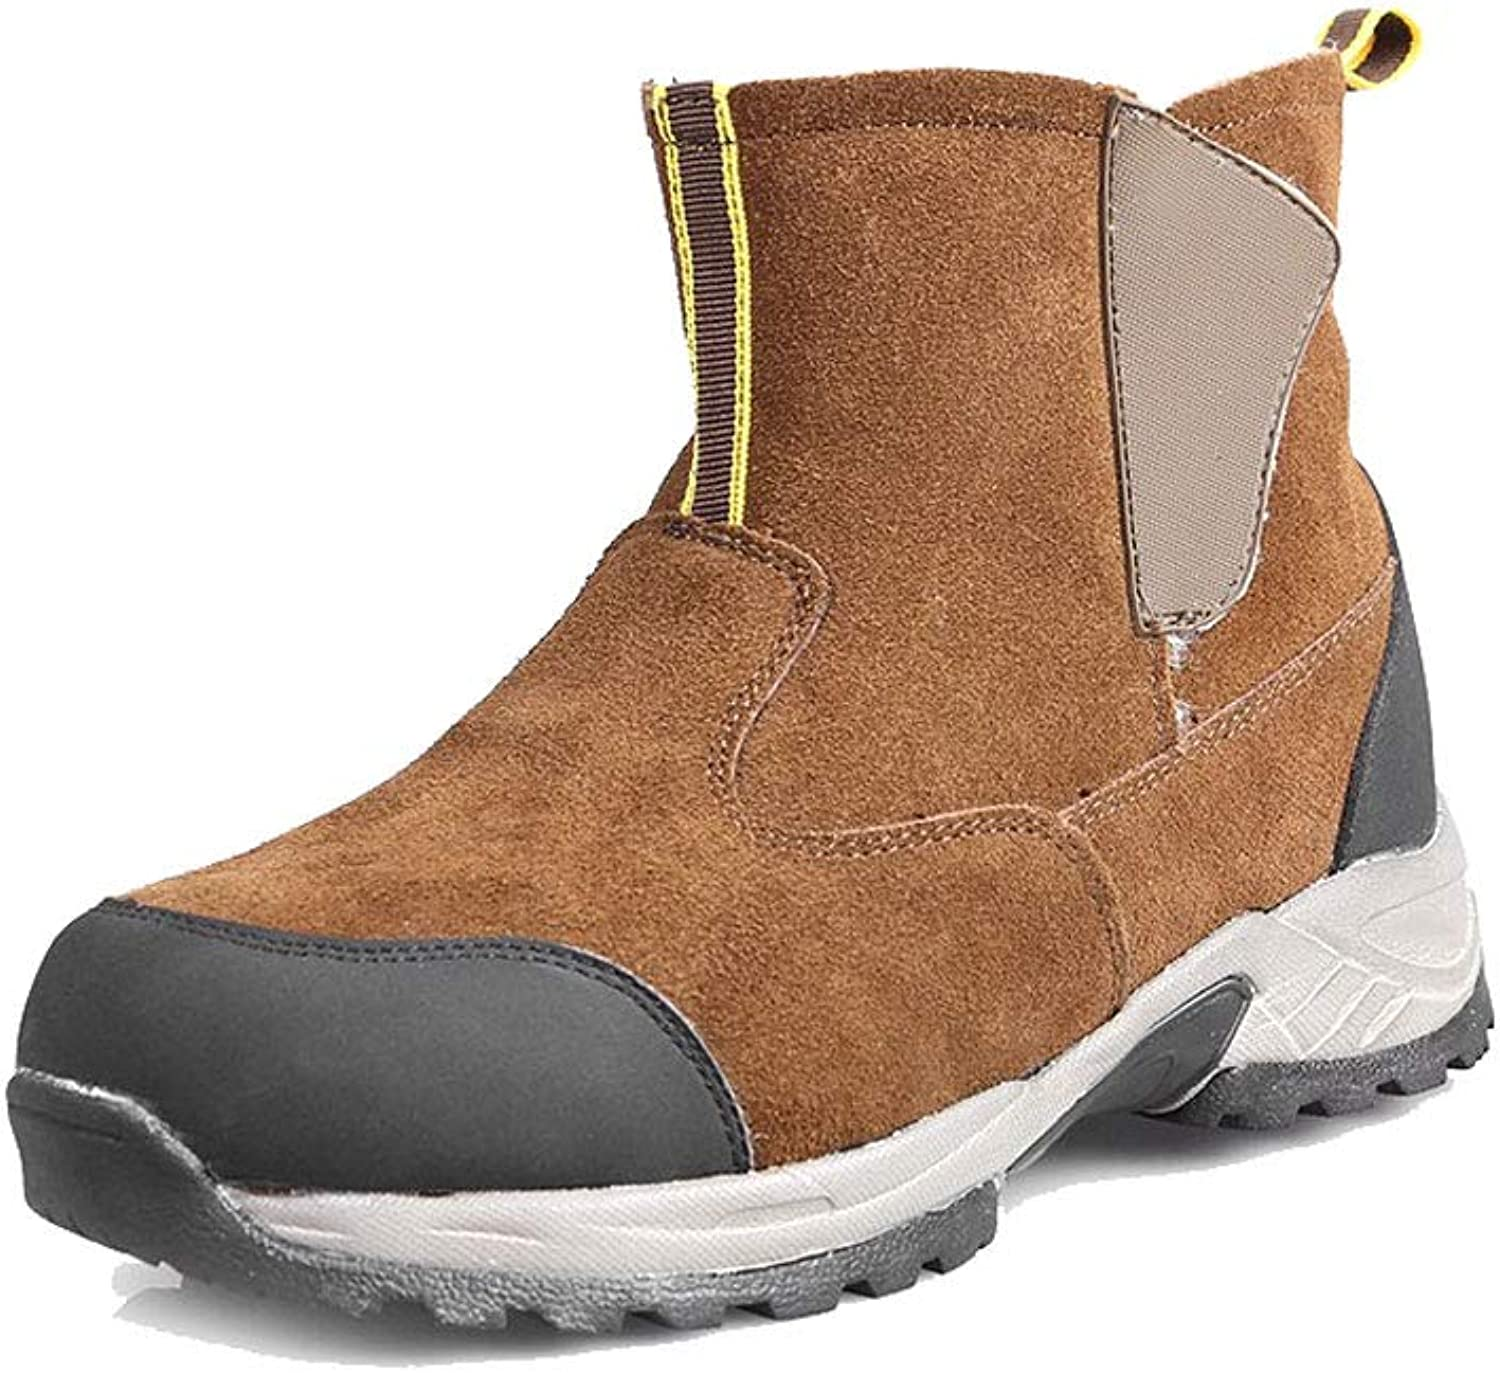 Ailj Snow Boots, Men's Leather Warm Boots, Thick Cotton shoes, Outdoor Cotton Boots, Non-Slip Waterproof, (Brown)